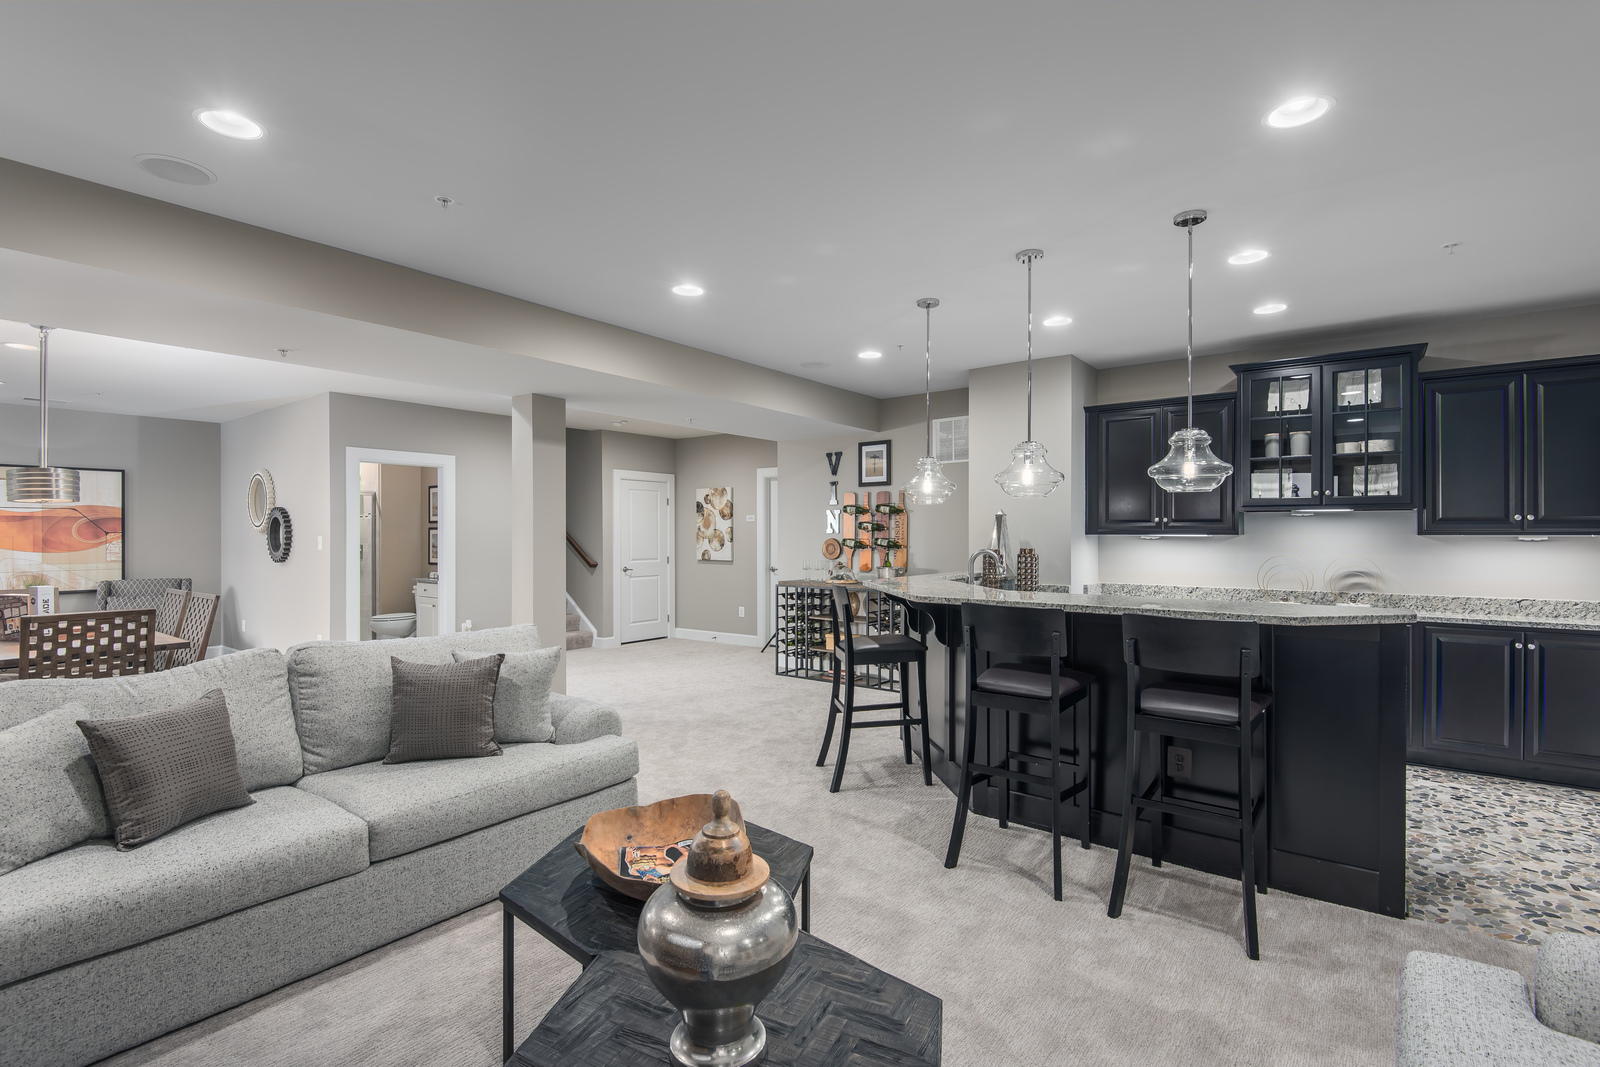 Your finished basement includes a full bath, and provides extra space! Click here to join the Priority List and take advantage of this incentive for VIPs only.